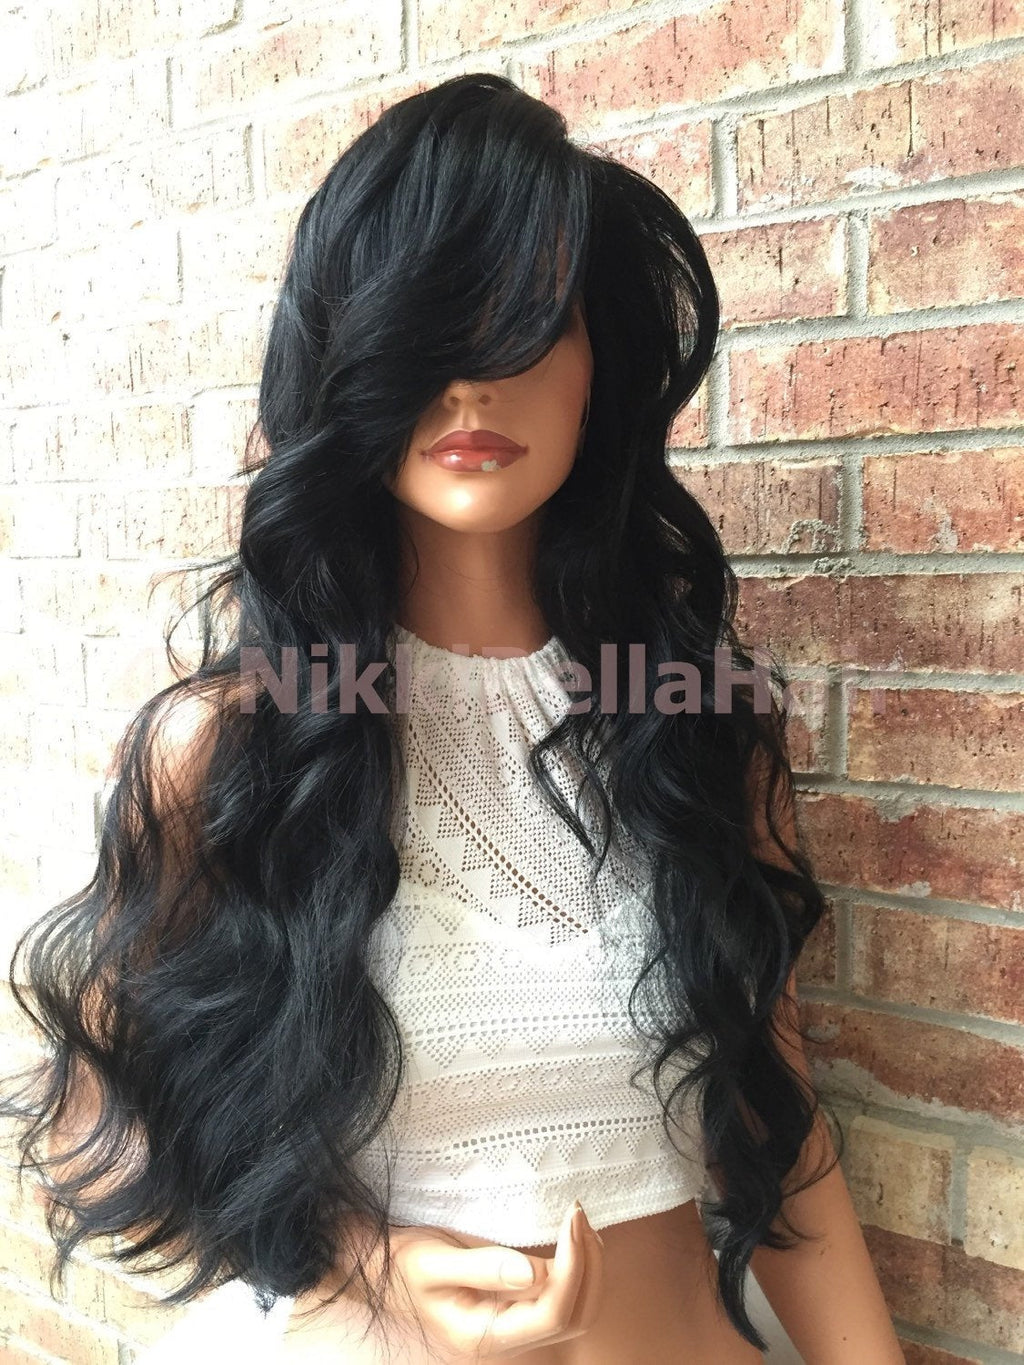 Flint Black Body Curly Front Swiss Human Hair Blend Multi Parting Lace Front Wig 26""